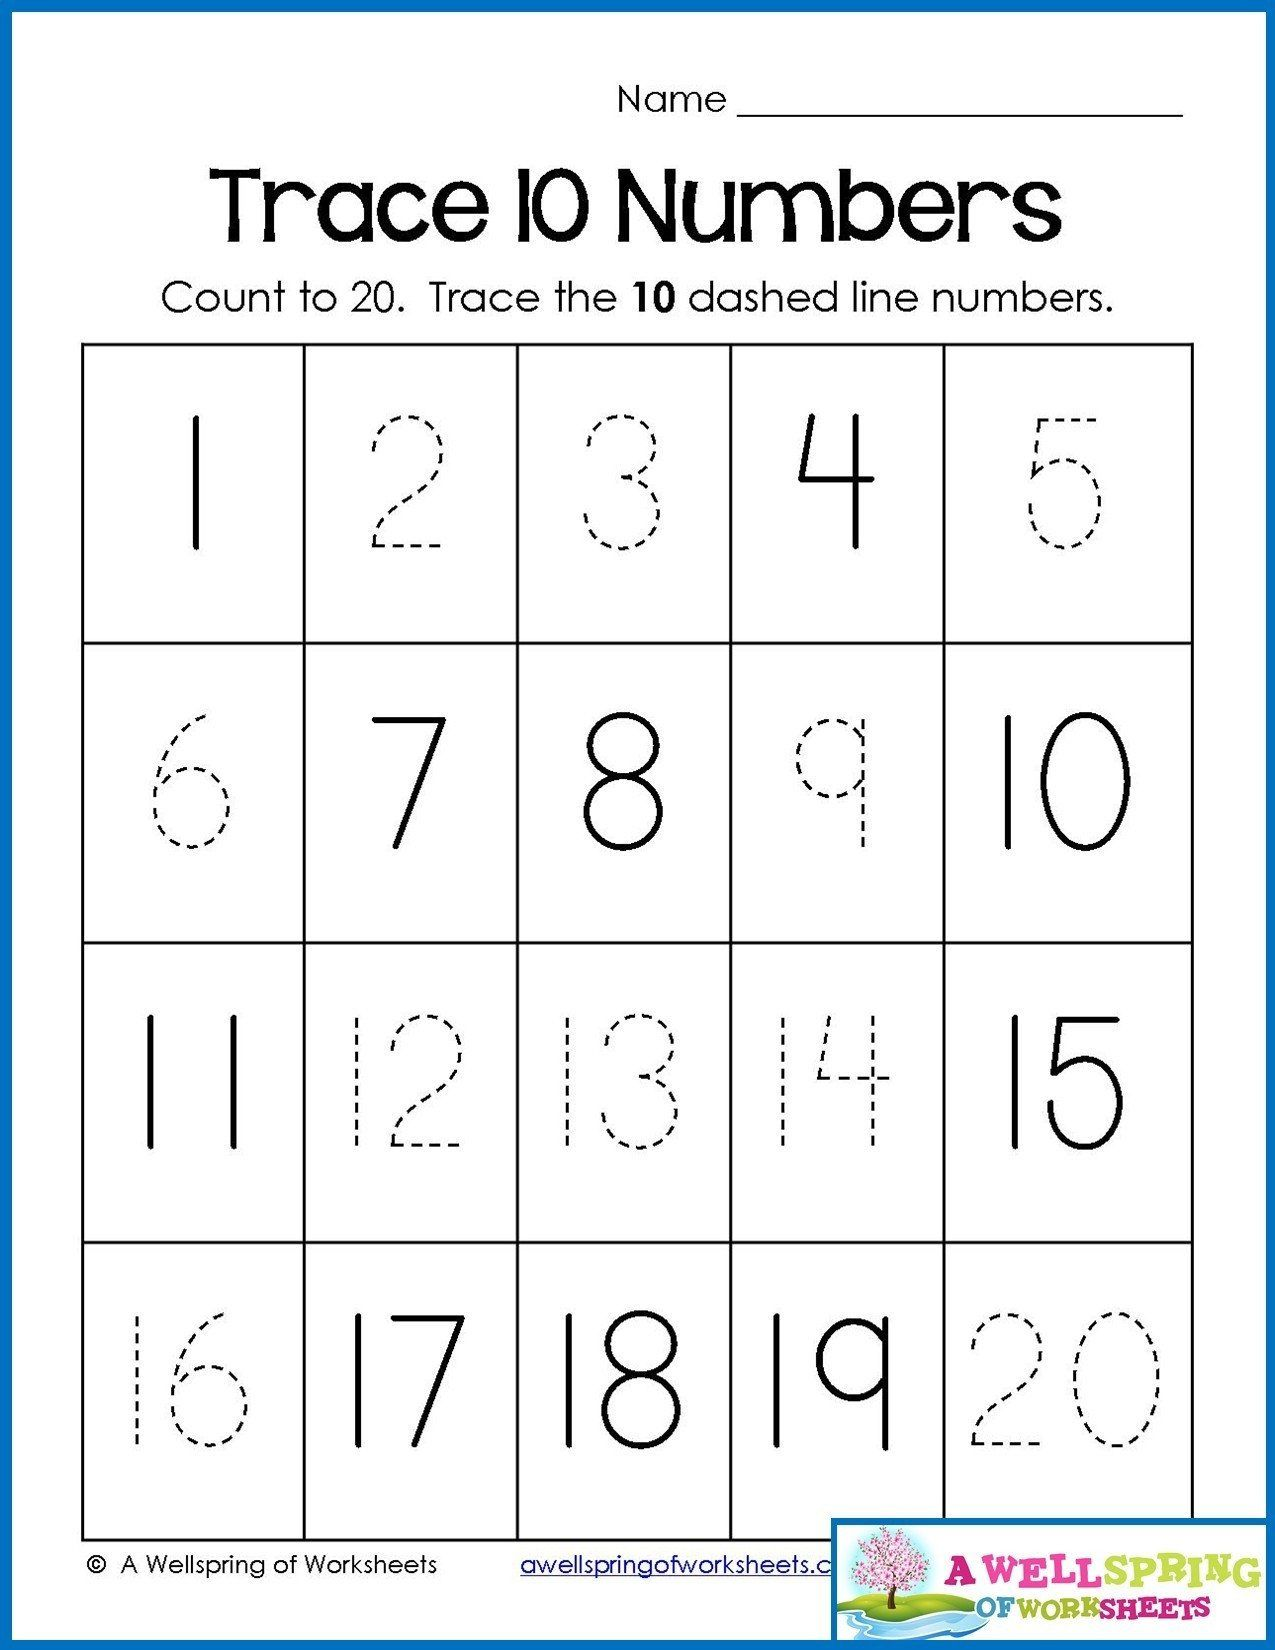 Tracing Numbers 1 20 Worksheets 4 Counting Worksheets